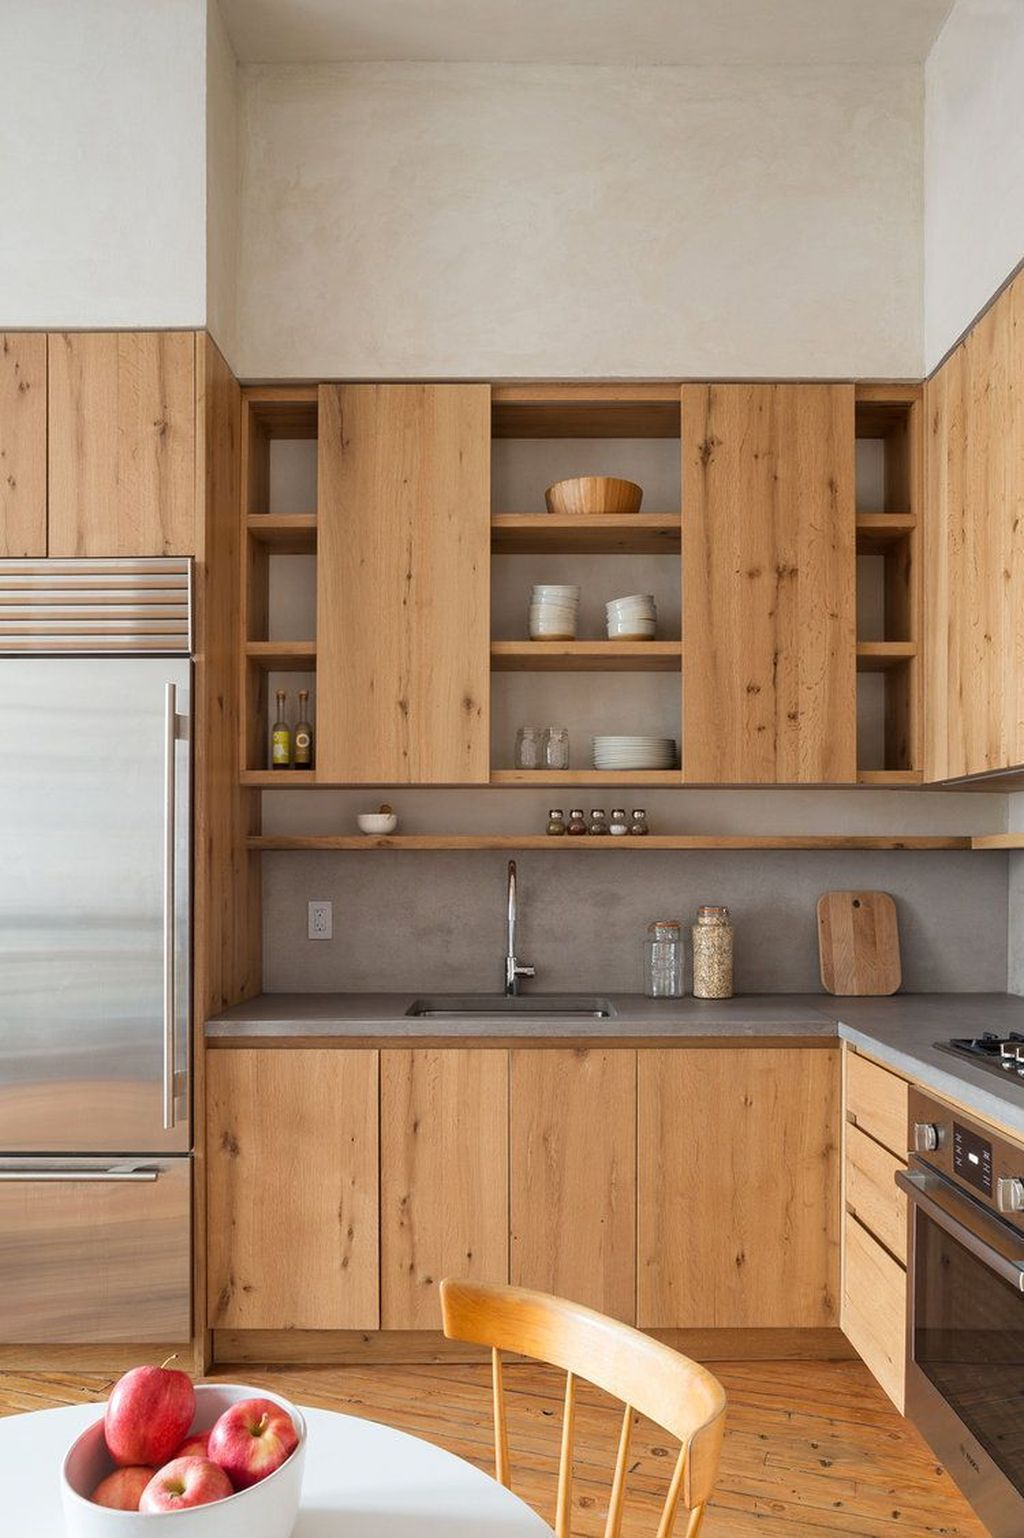 Elegant Minimalist Kitchen Design Ideas For Small Space To Try 15